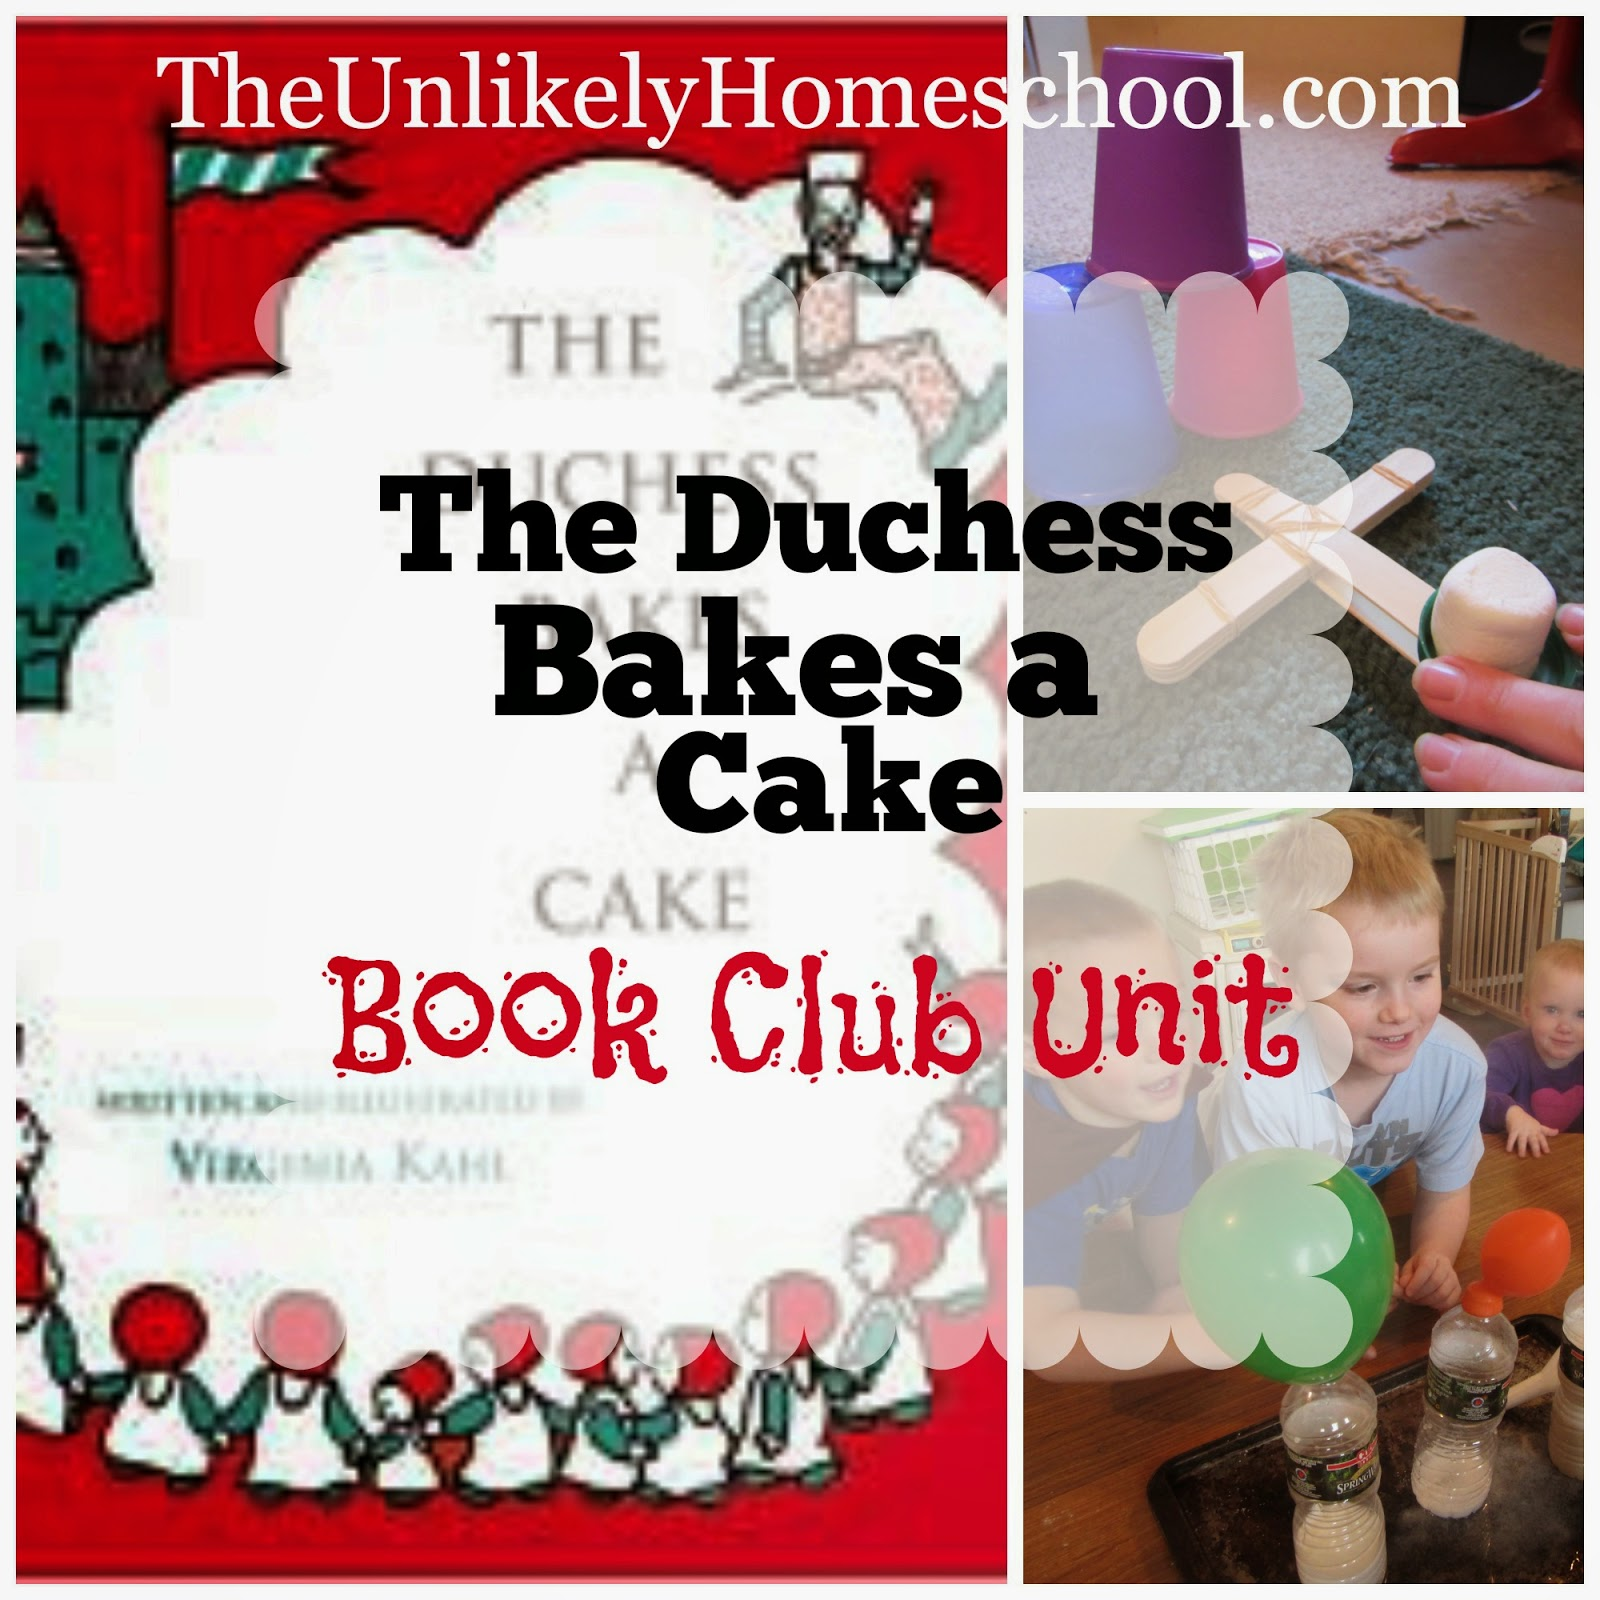 Book Club Unit:  Hands on science projects and craft for The Duchess Bakes a Cake {The Unlikely Homeschool}